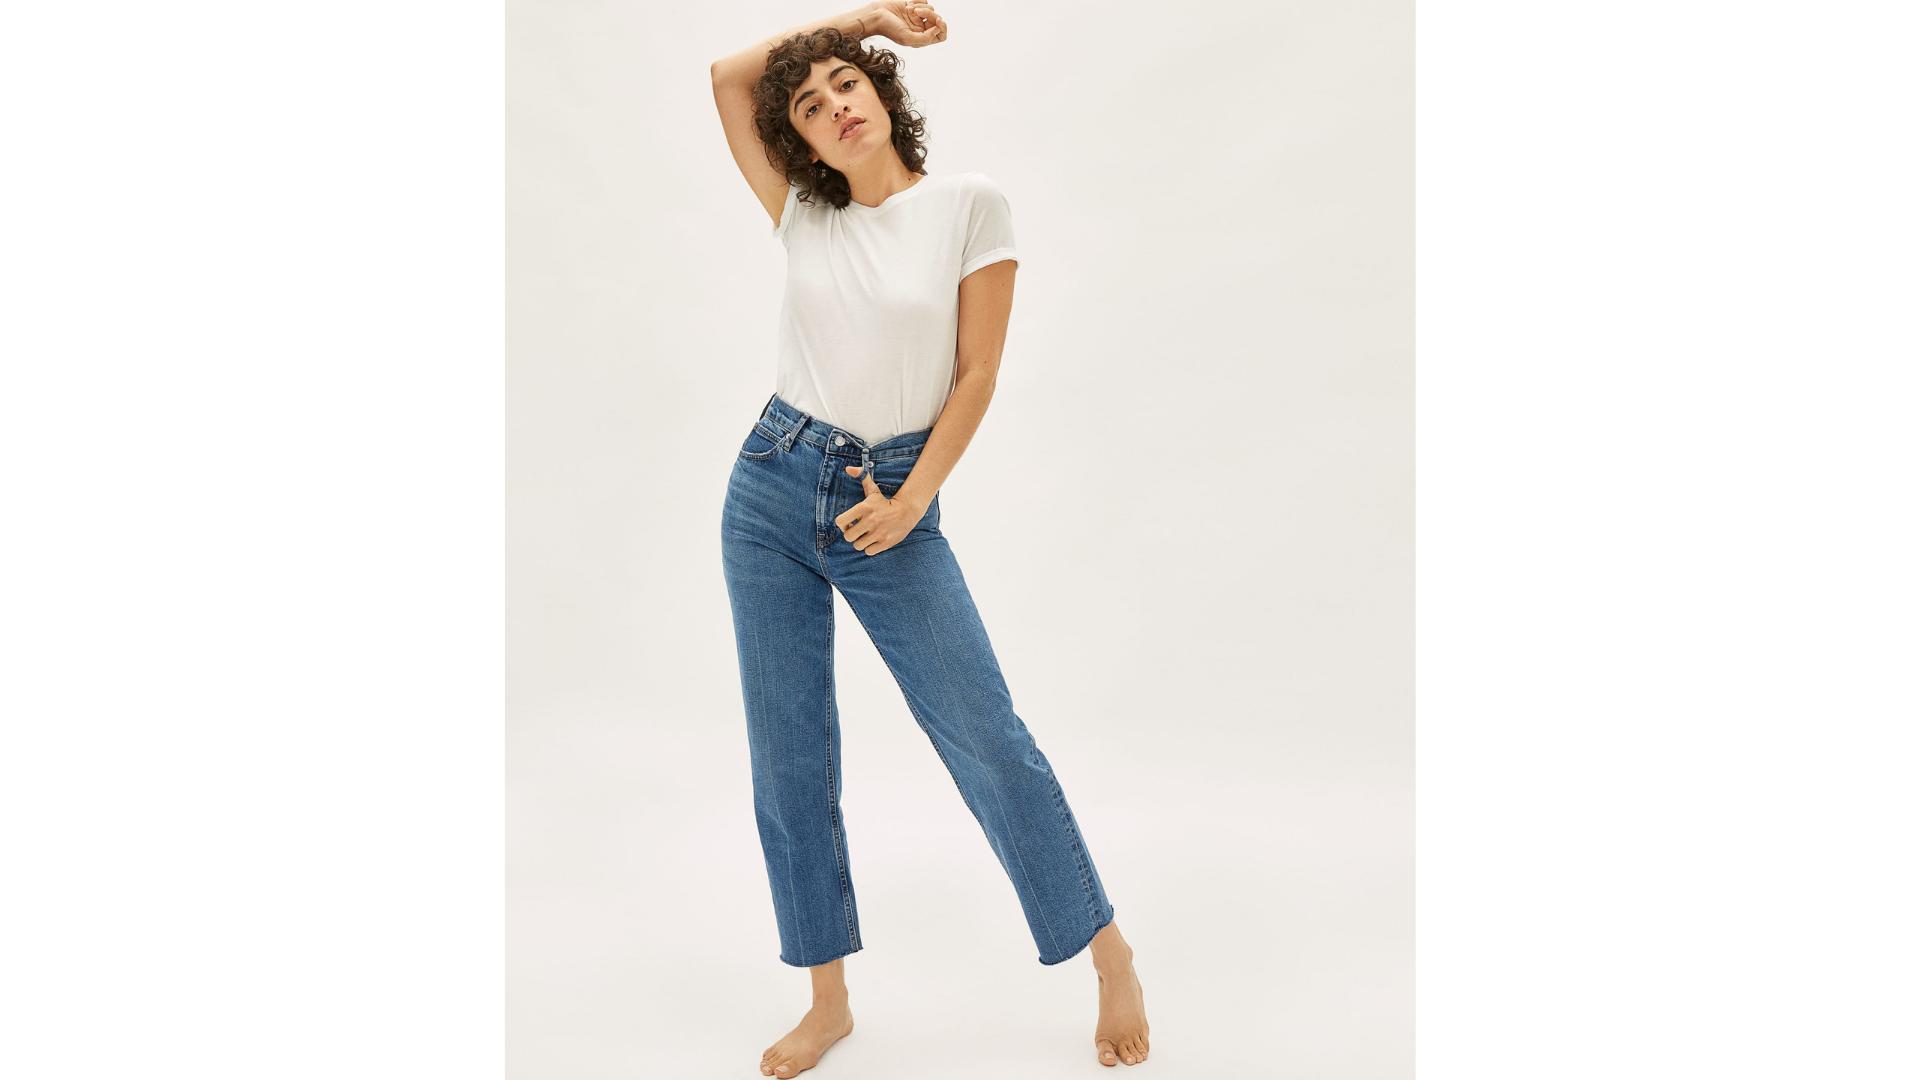 Everlane best clothing stores for women over 50